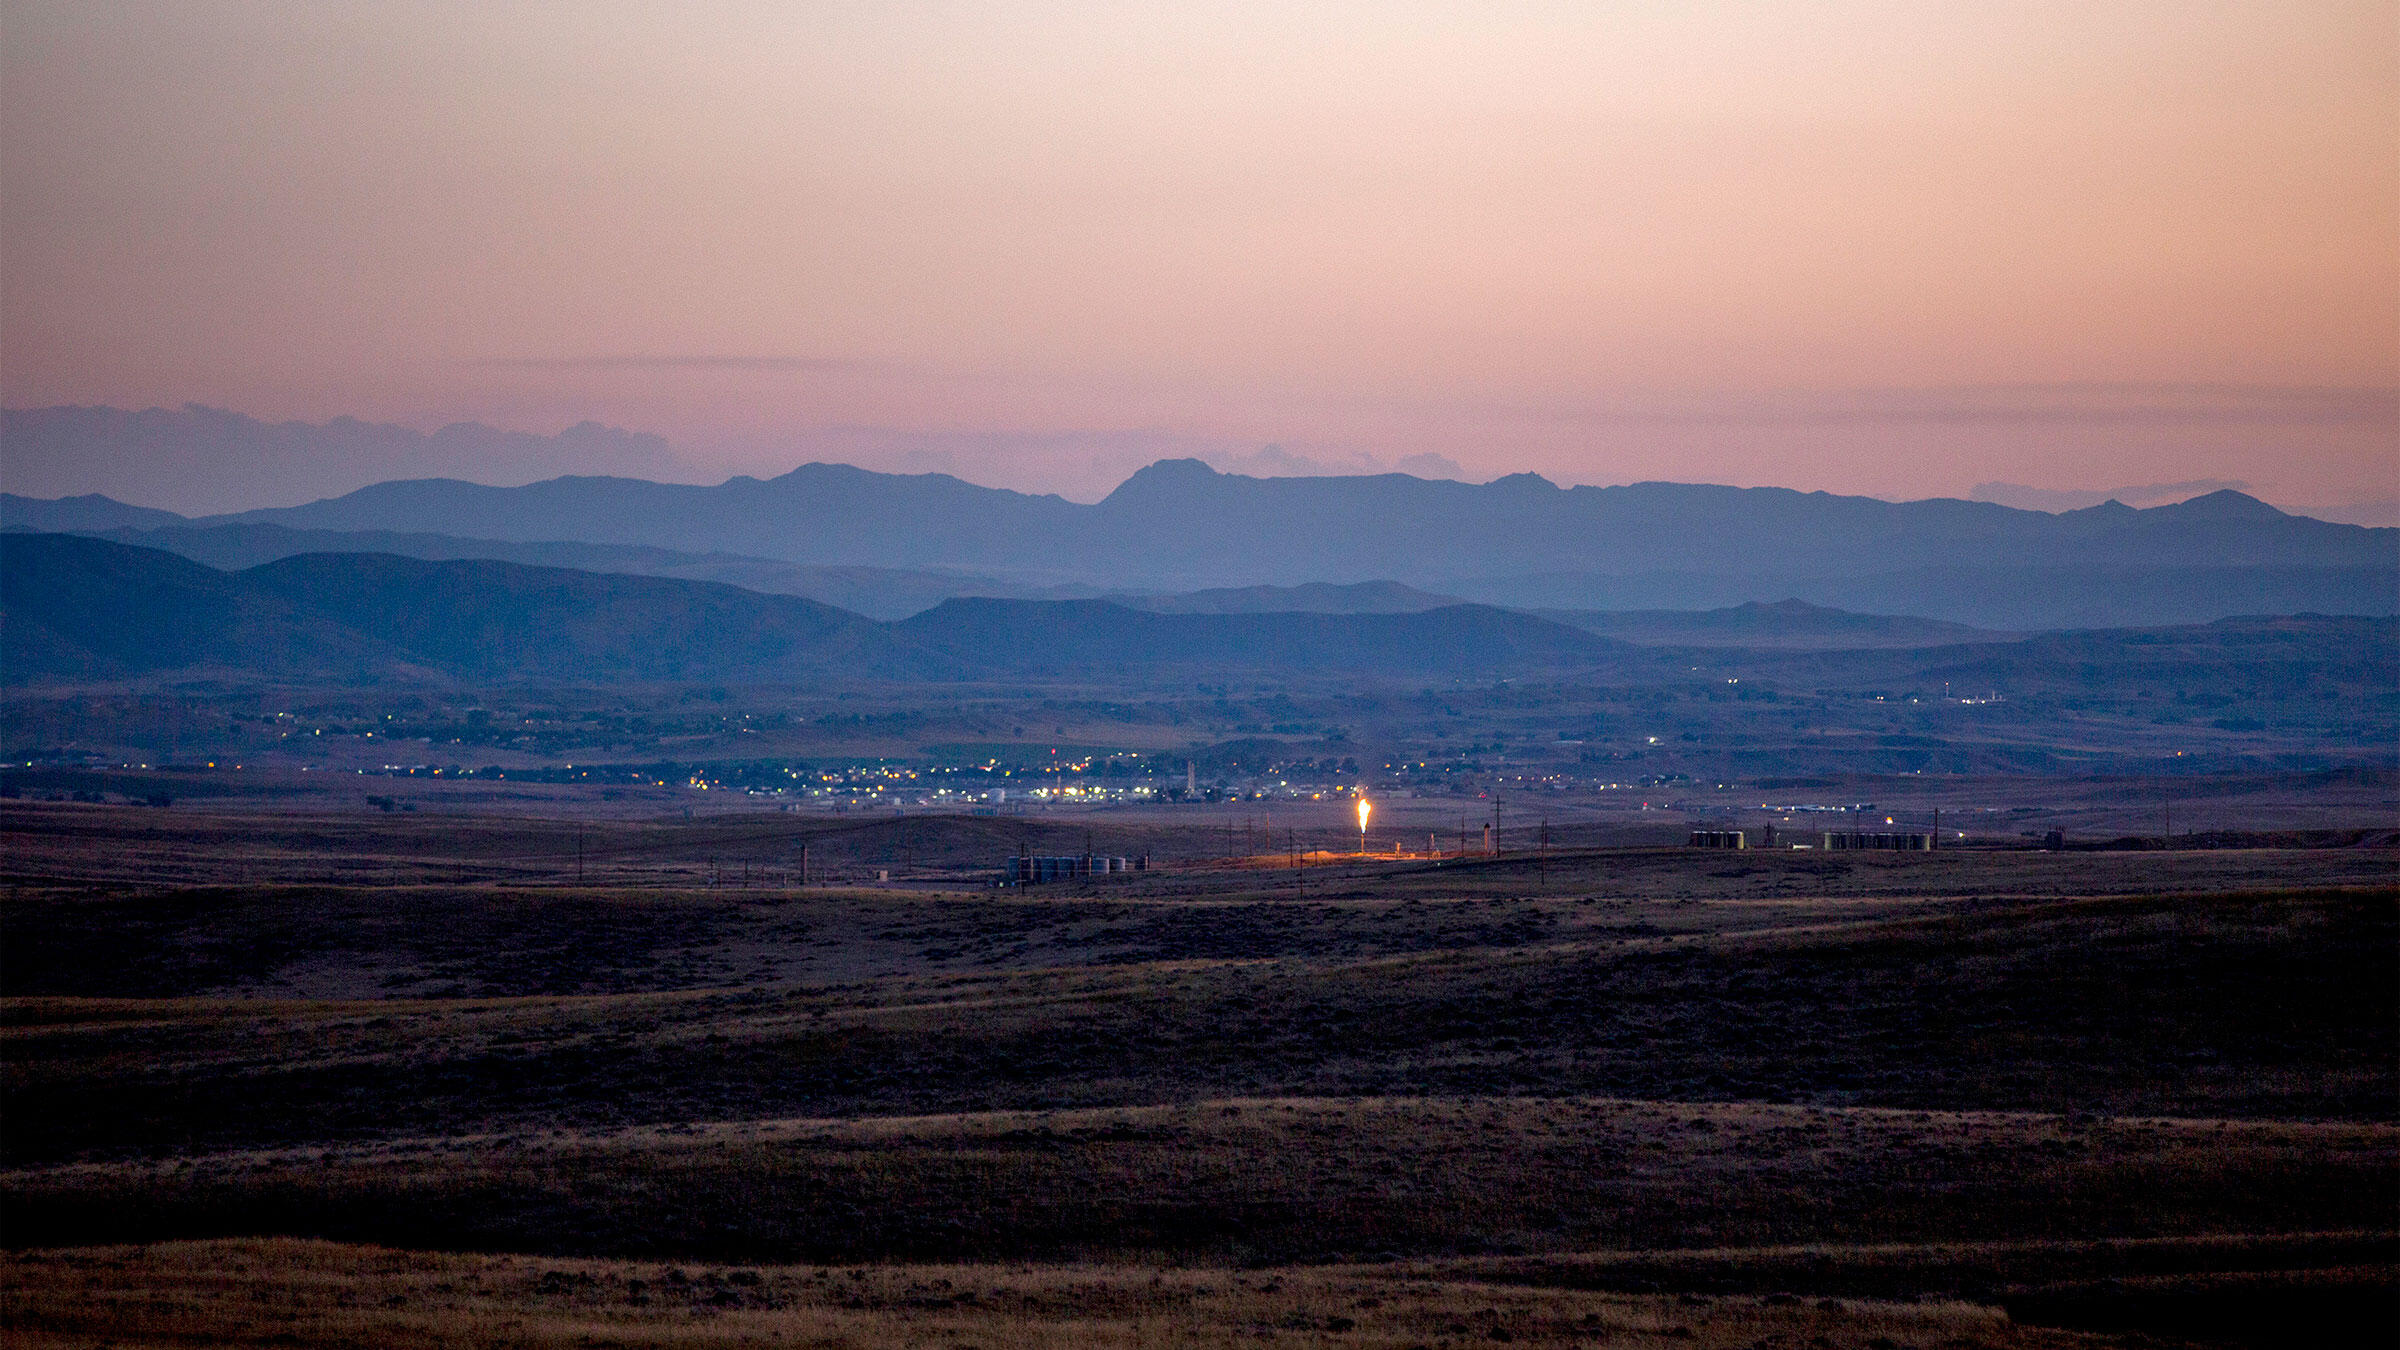 Natural gas flare at an oil drilling site in Wyoming. Kristina Barker/The New York Times